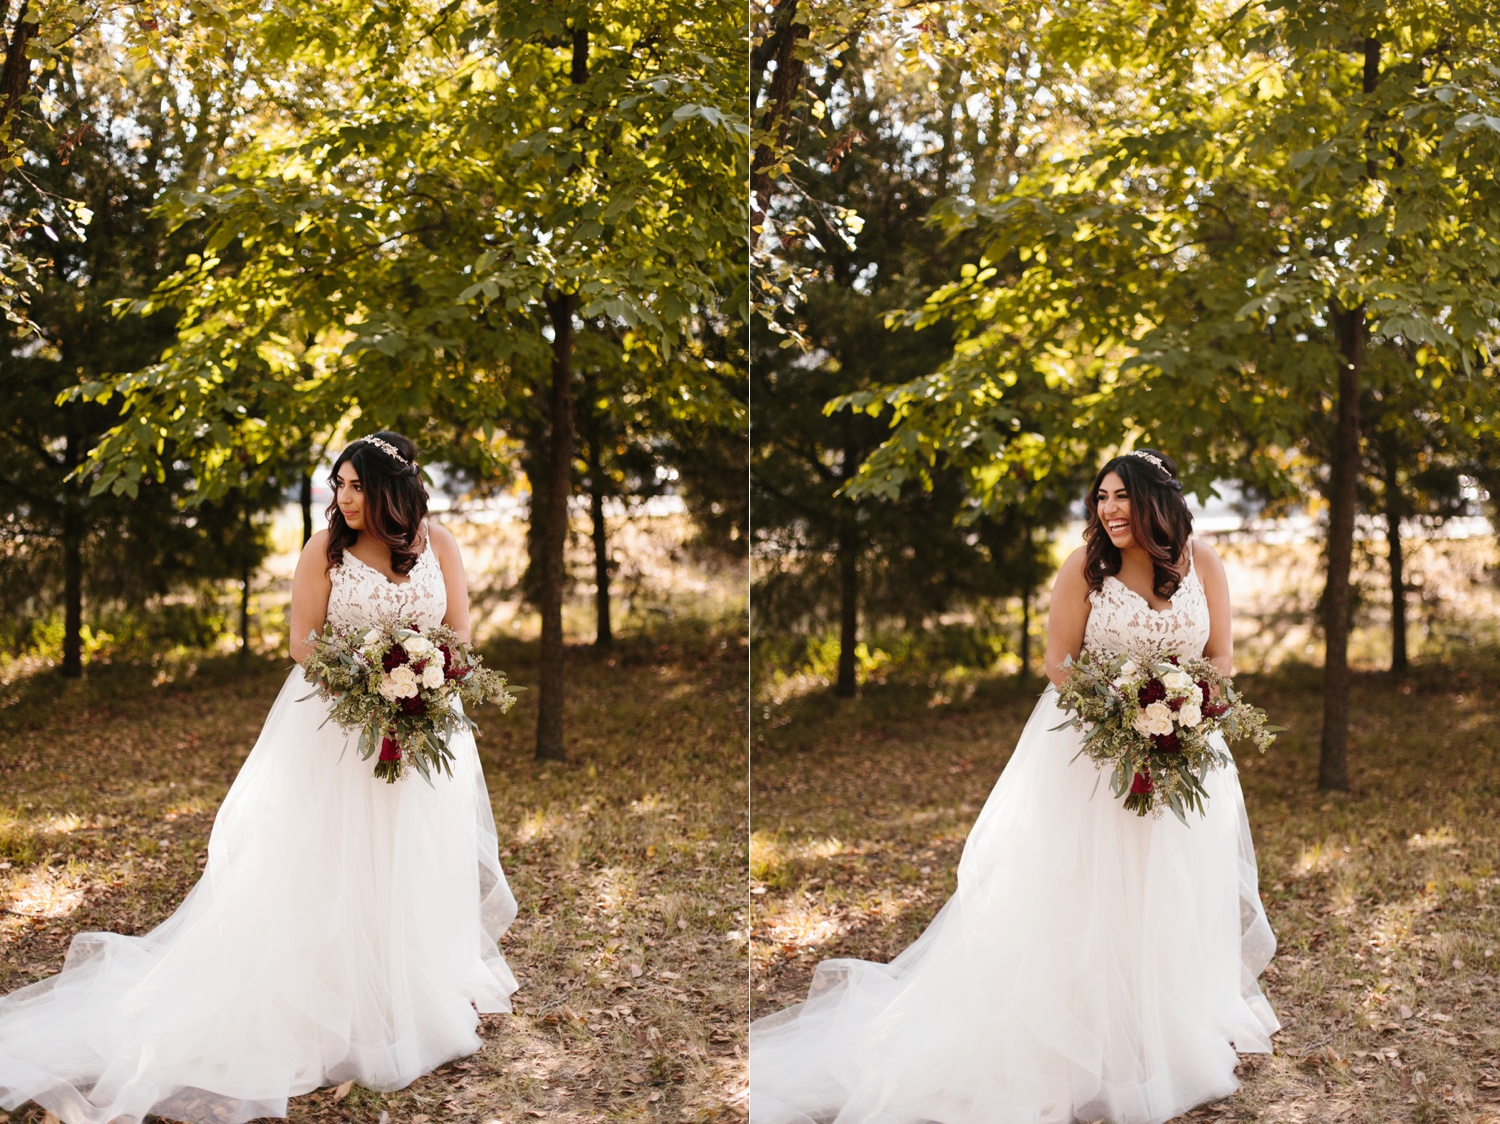 Grant + Lysette | a vibrant, deep burgundy and navy, and mixed metals wedding at Hidden Pines Chapel by North Texas Wedding Photographer Rachel Meagan Photography 046